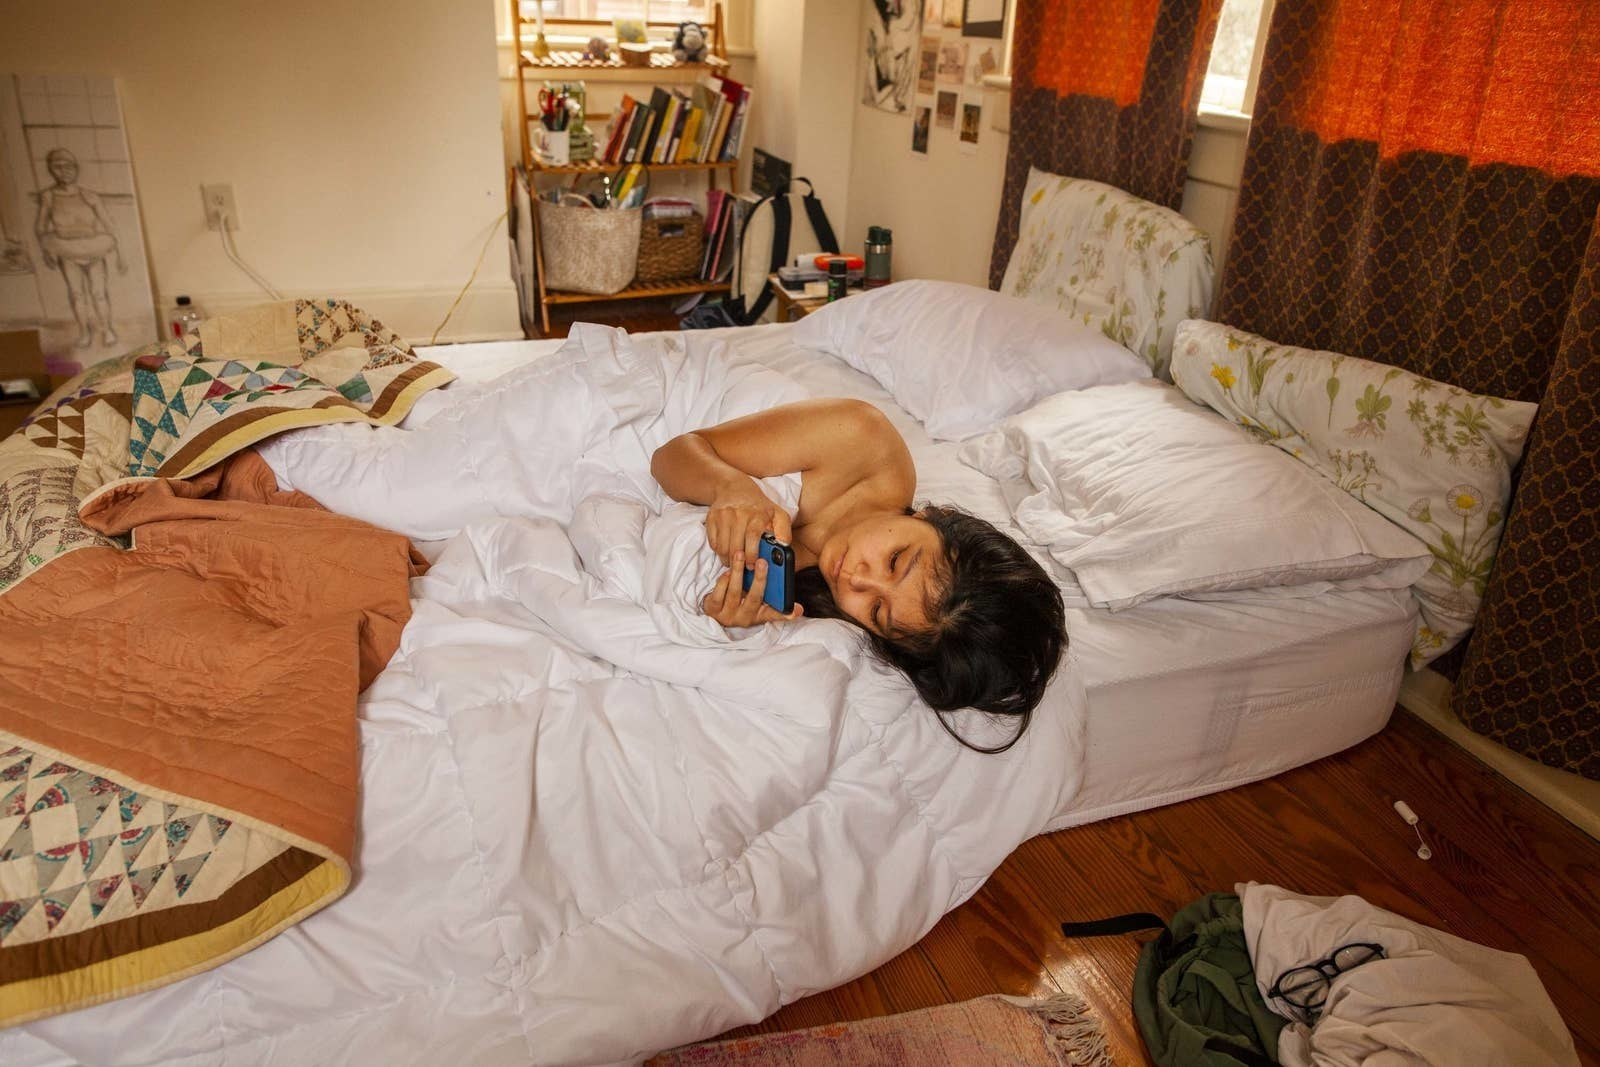 A girl is on her phone in bed, which is a mattress on the floor, with the windows drawn